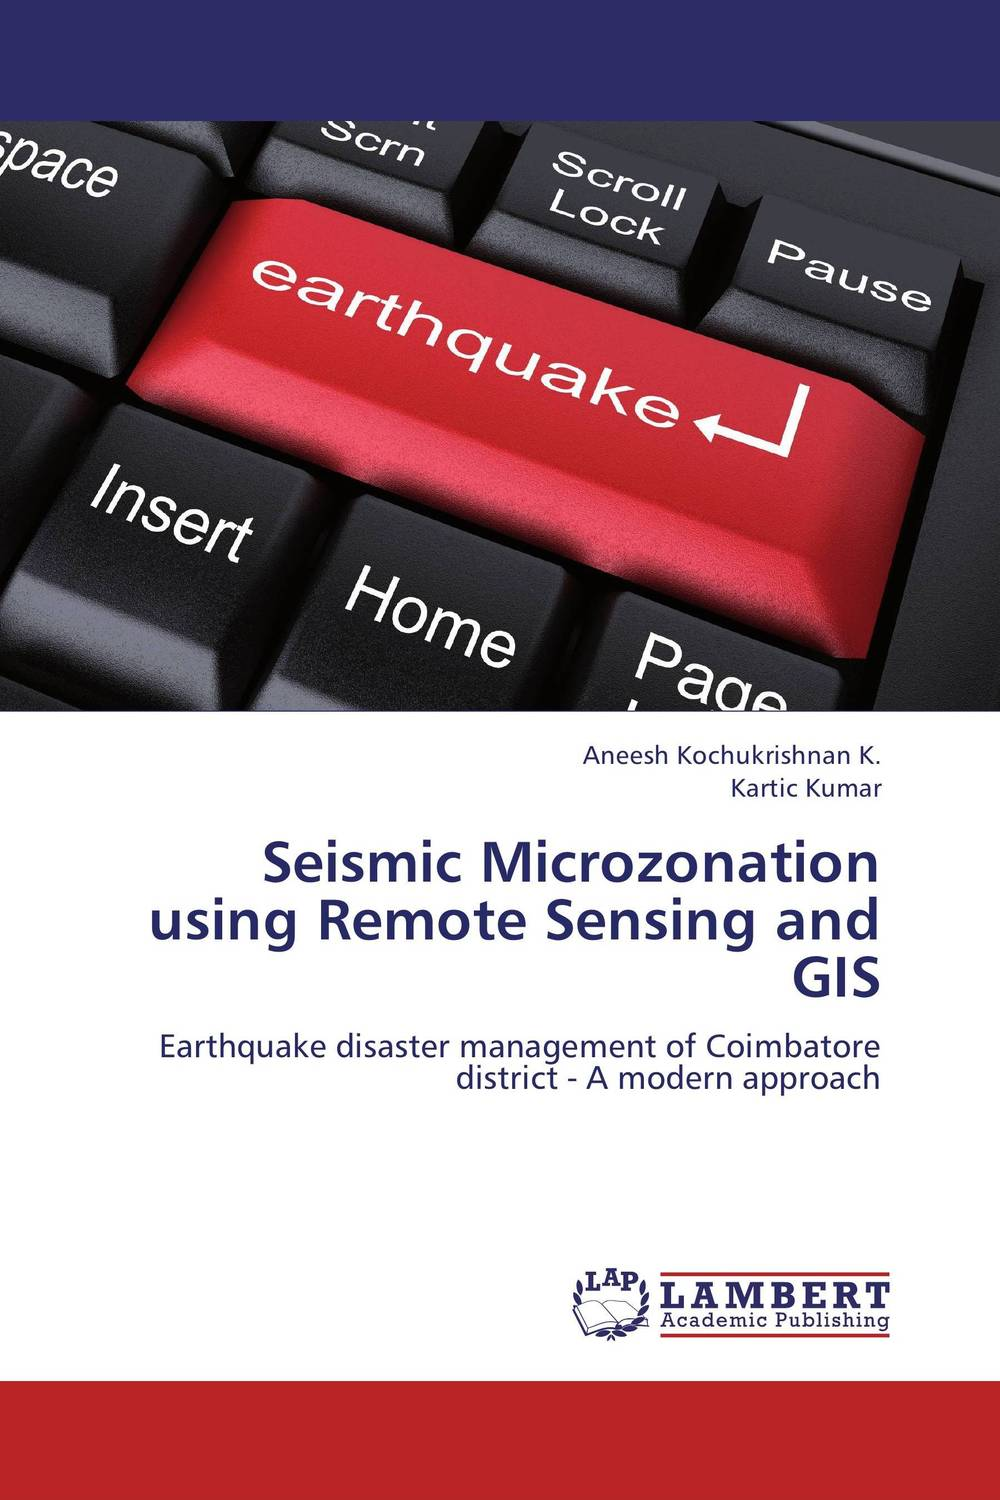 Seismic Microzonation using Remote Sensing and GIS